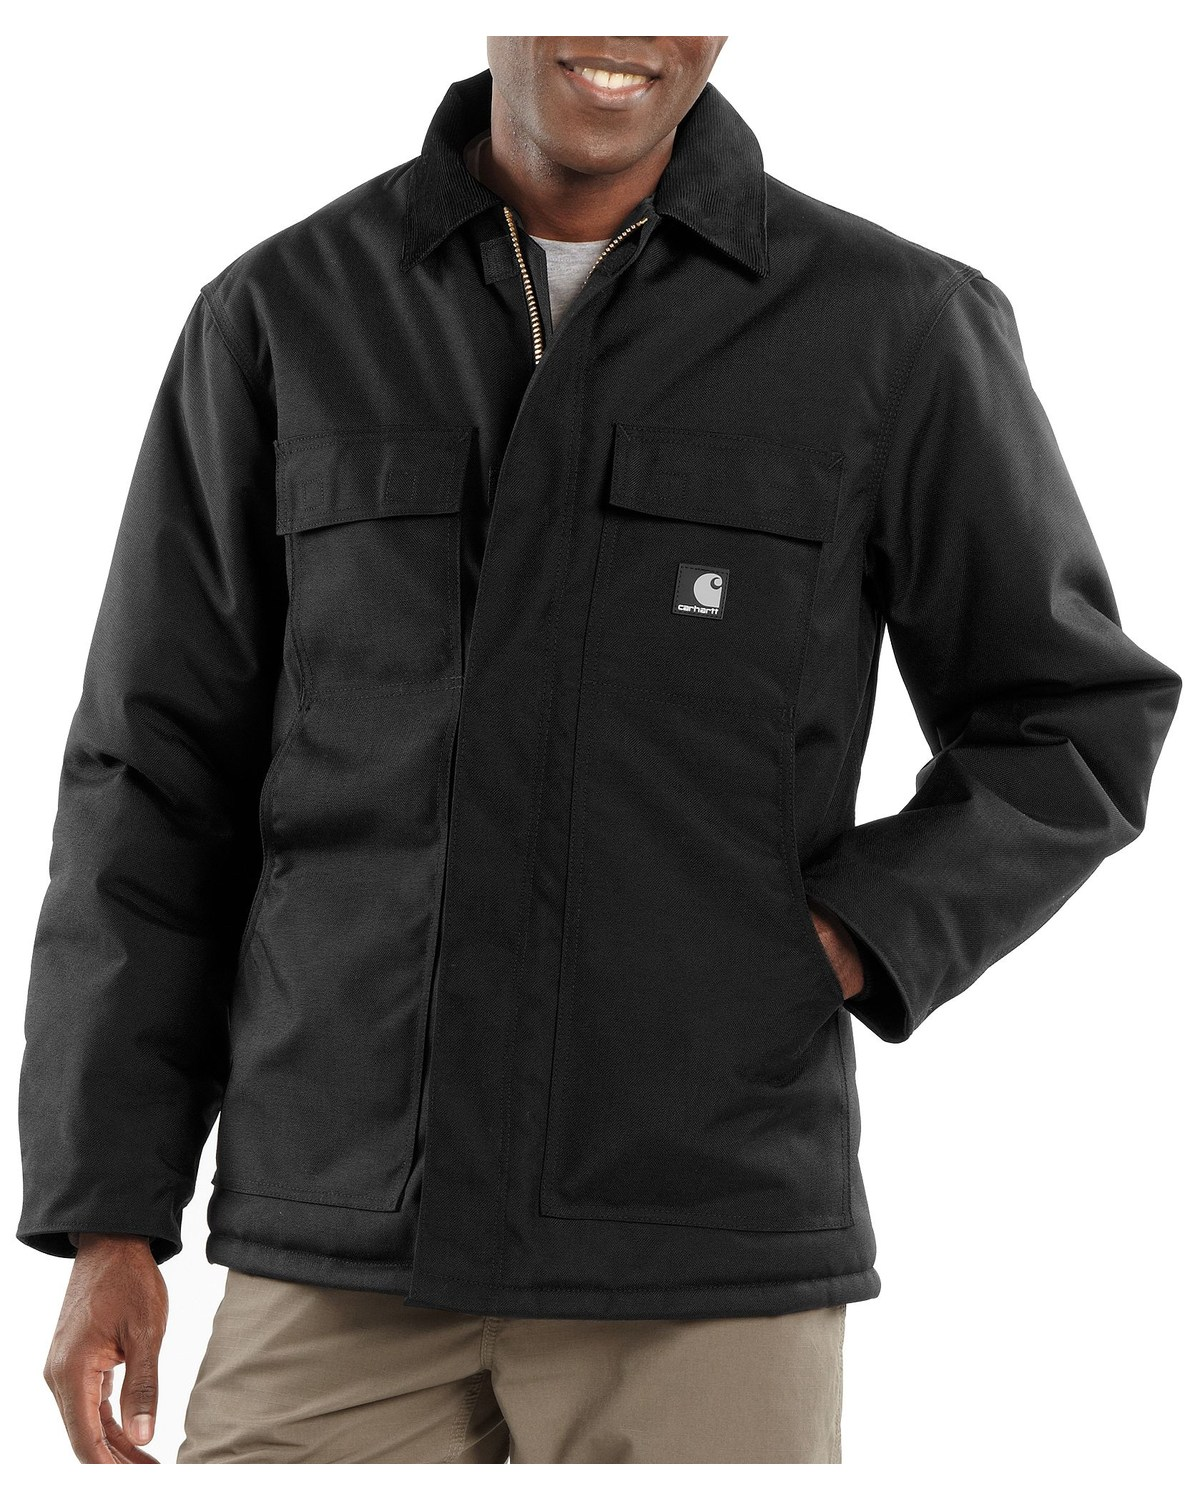 Carhartt Men's Extremes Active Arctic Quilt Lined Jacket | Boot Barn : carhartt quilted jacket - Adamdwight.com